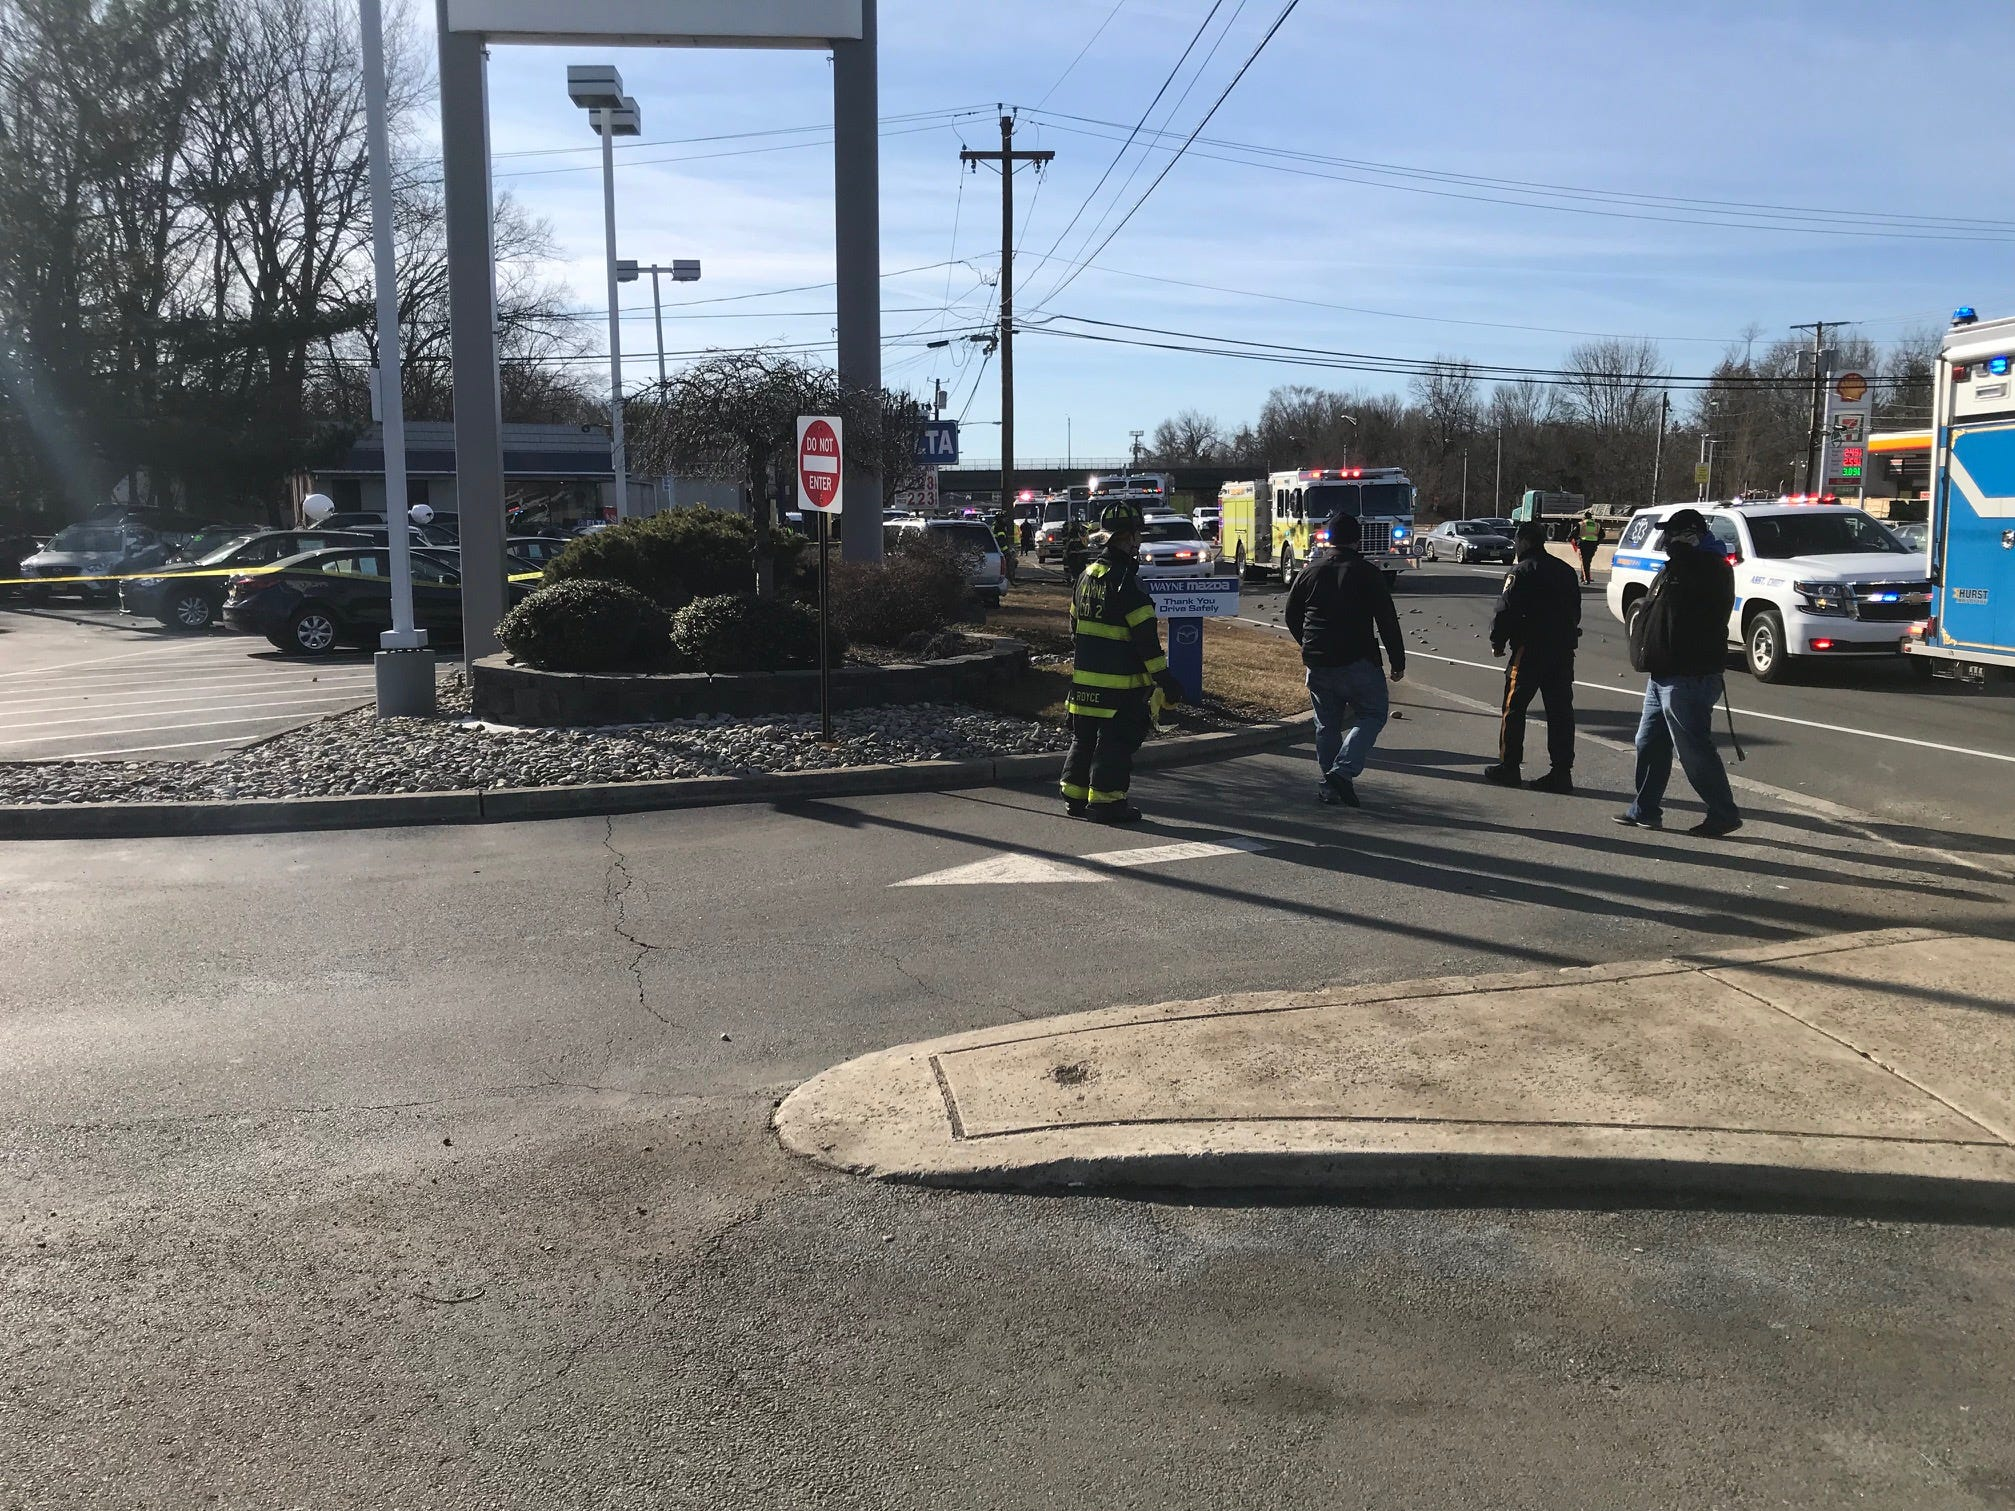 At least three cars were involved with a serious crash on Route 23 in Wayne.